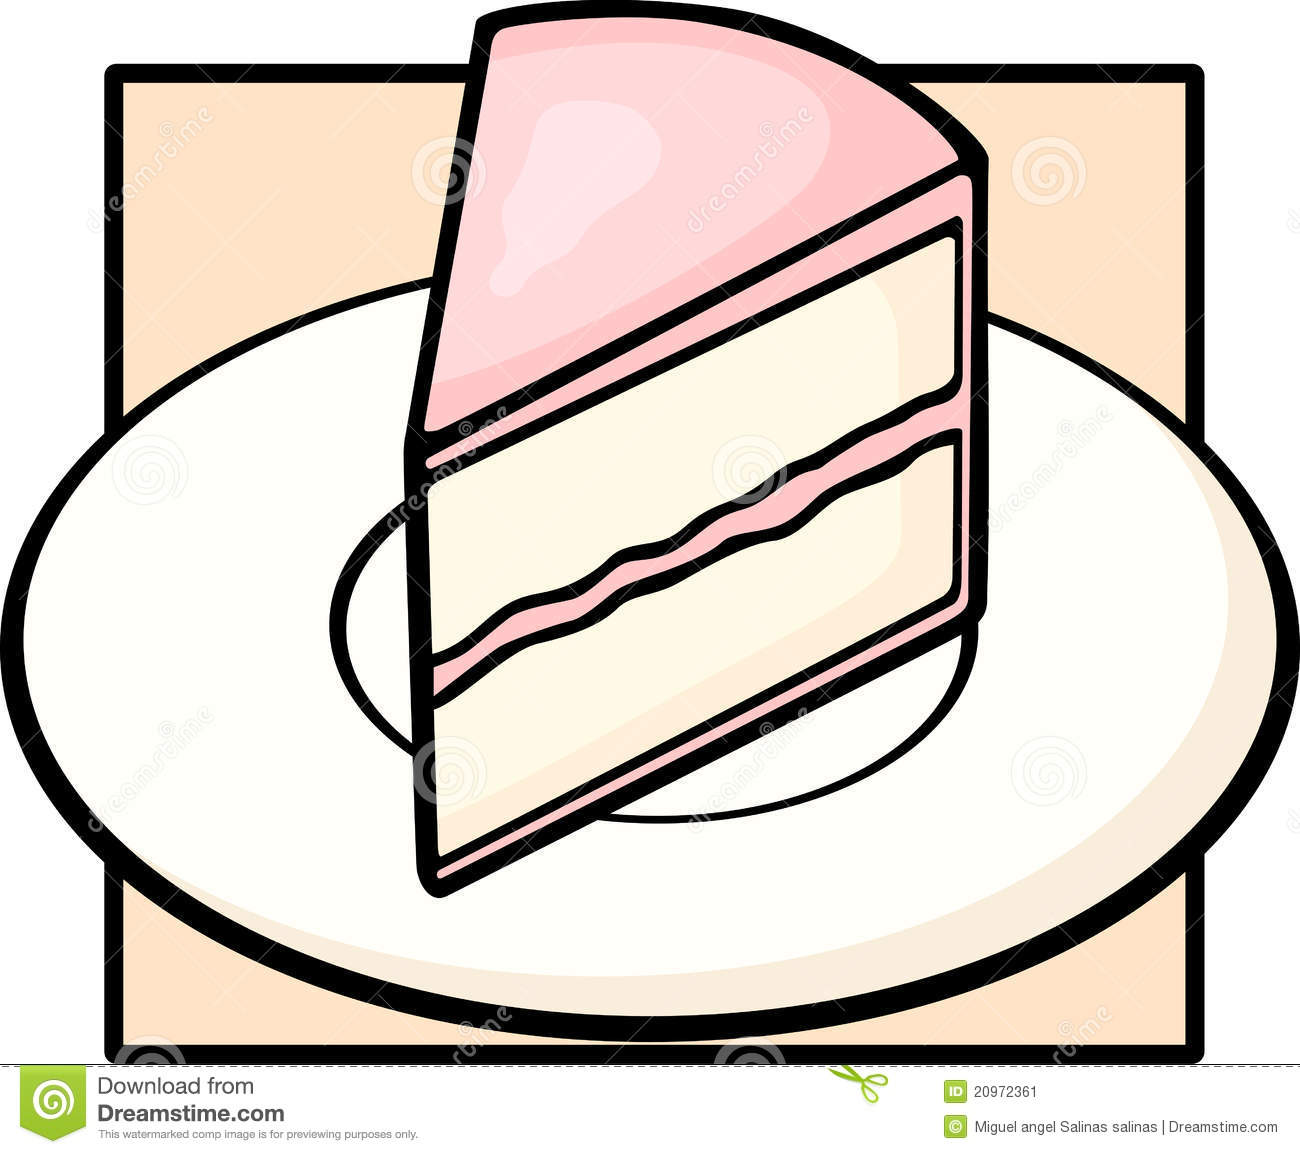 Sliced Cake Logos Clip Art.